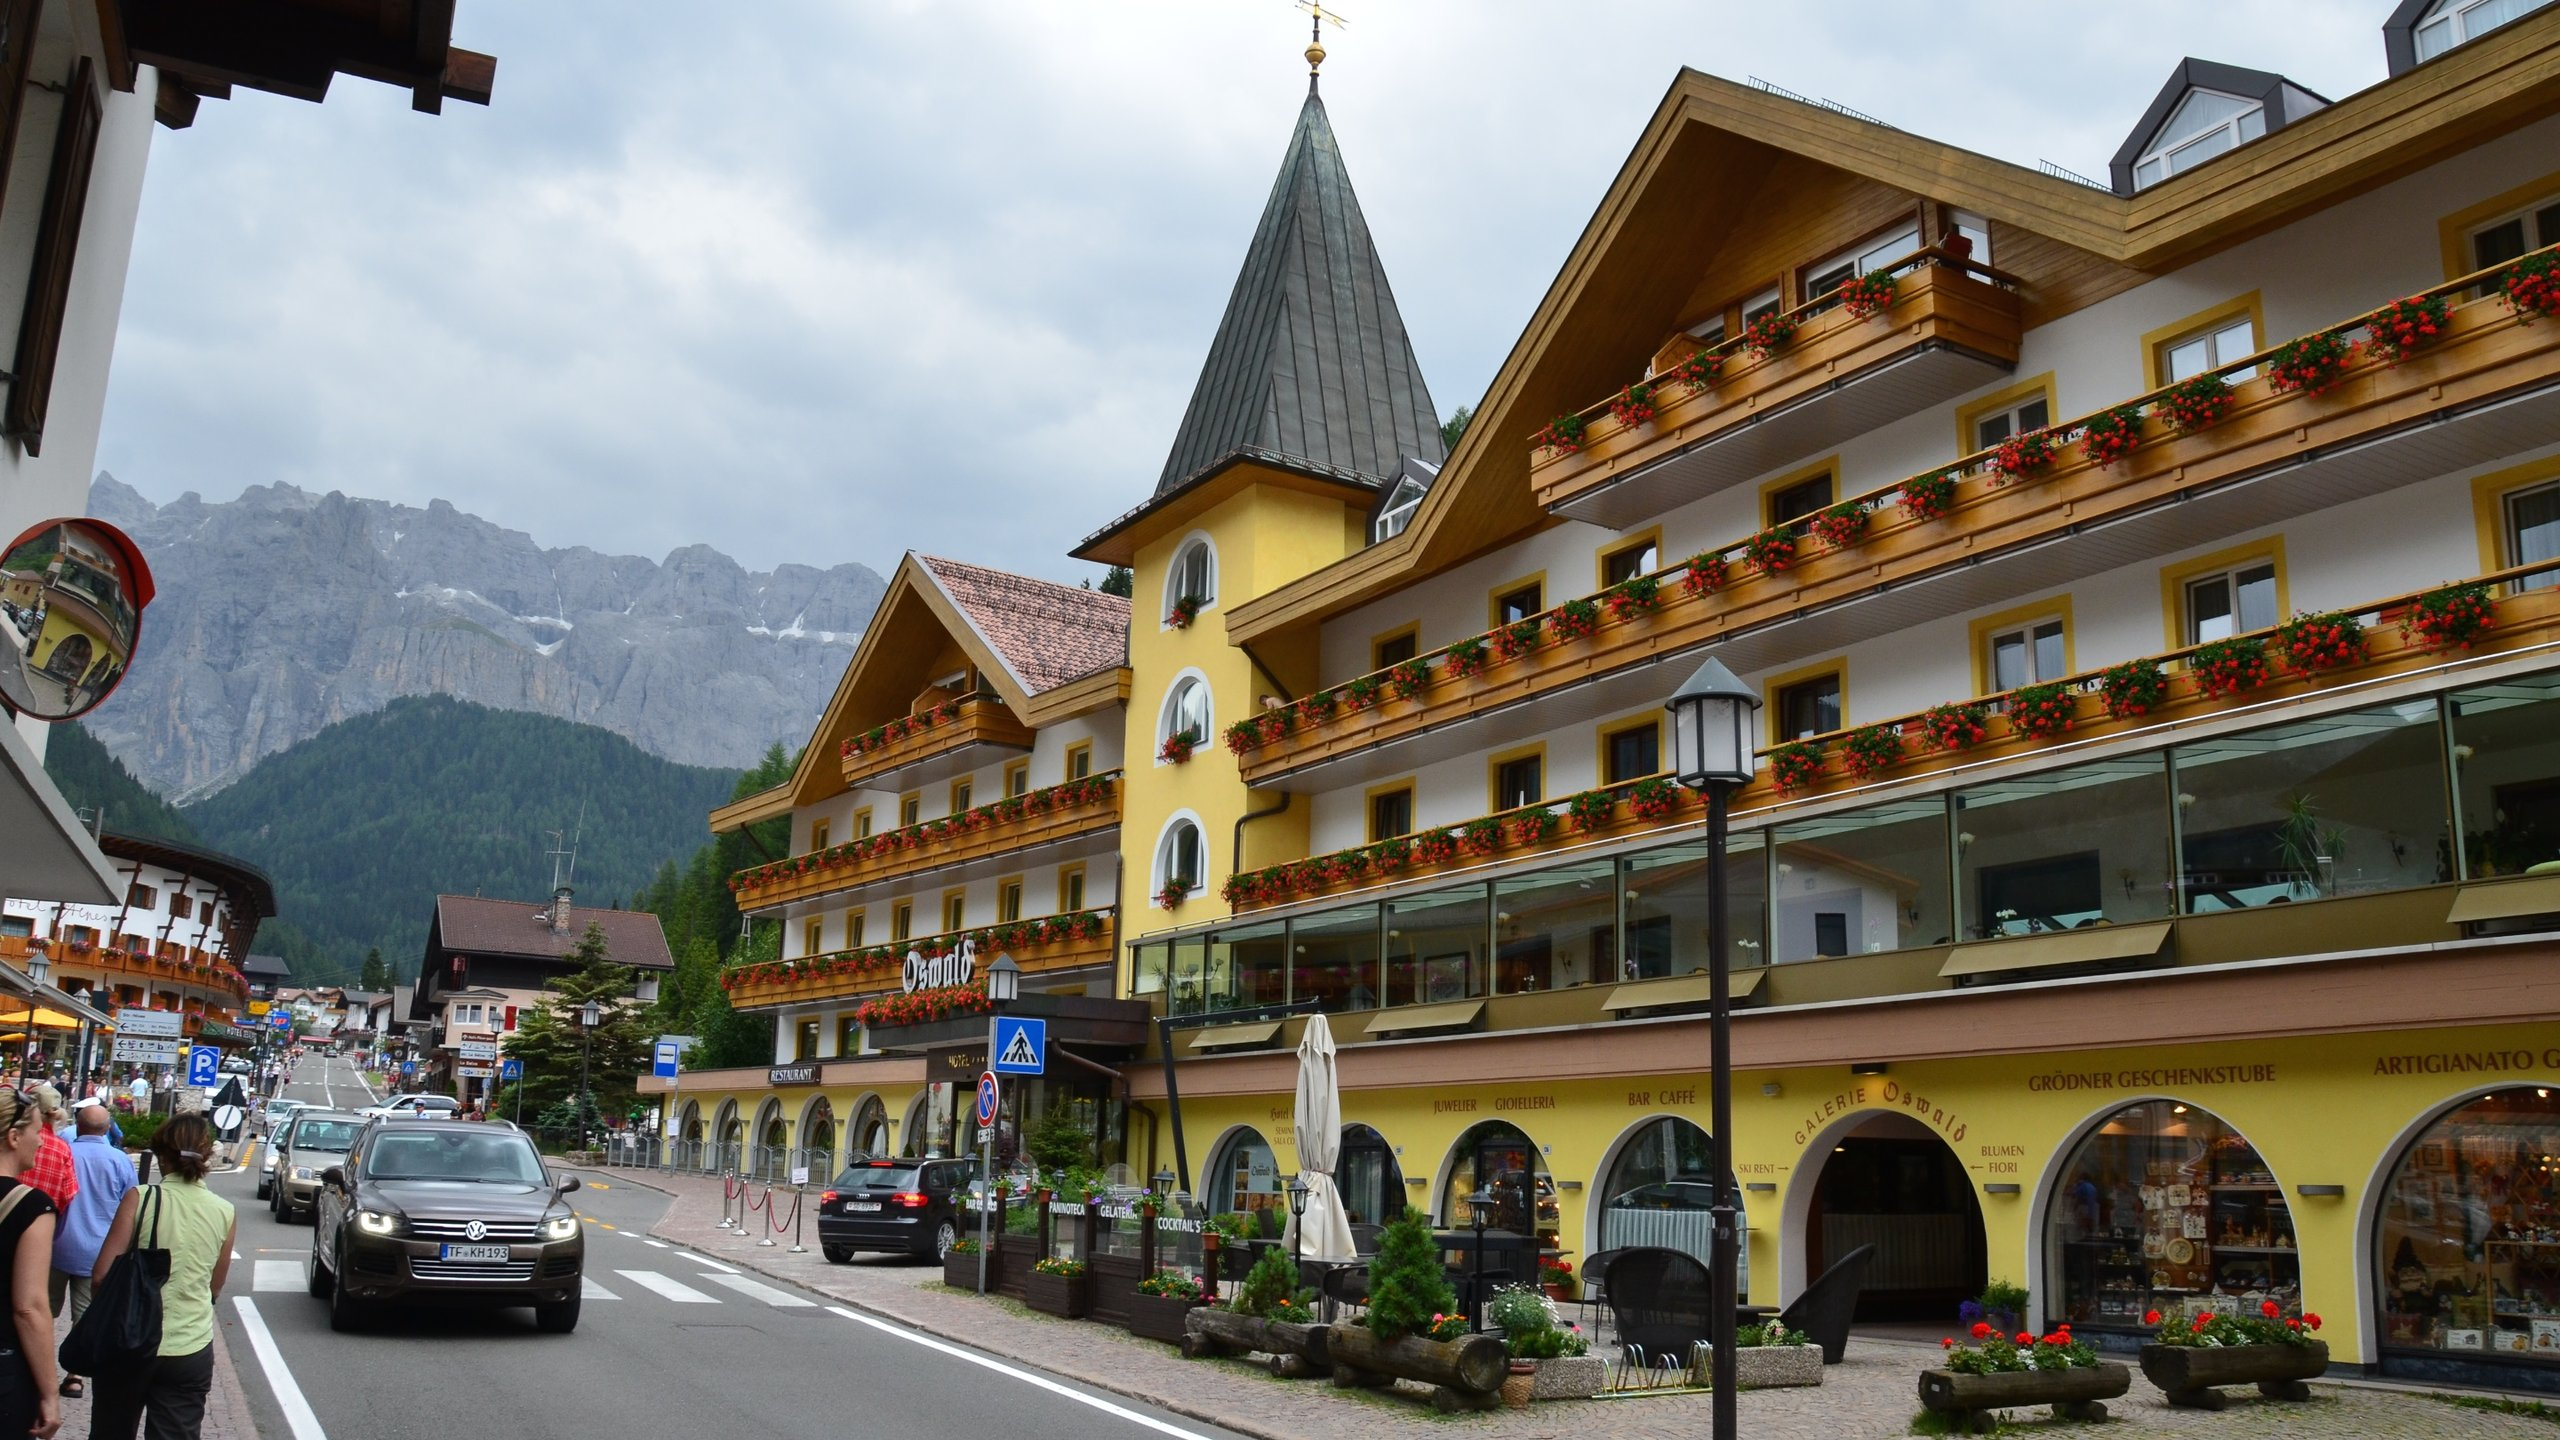 Gardena Berlin The 10 Best Hotels In Selva Di Val Gardena Trentino Alto Adige